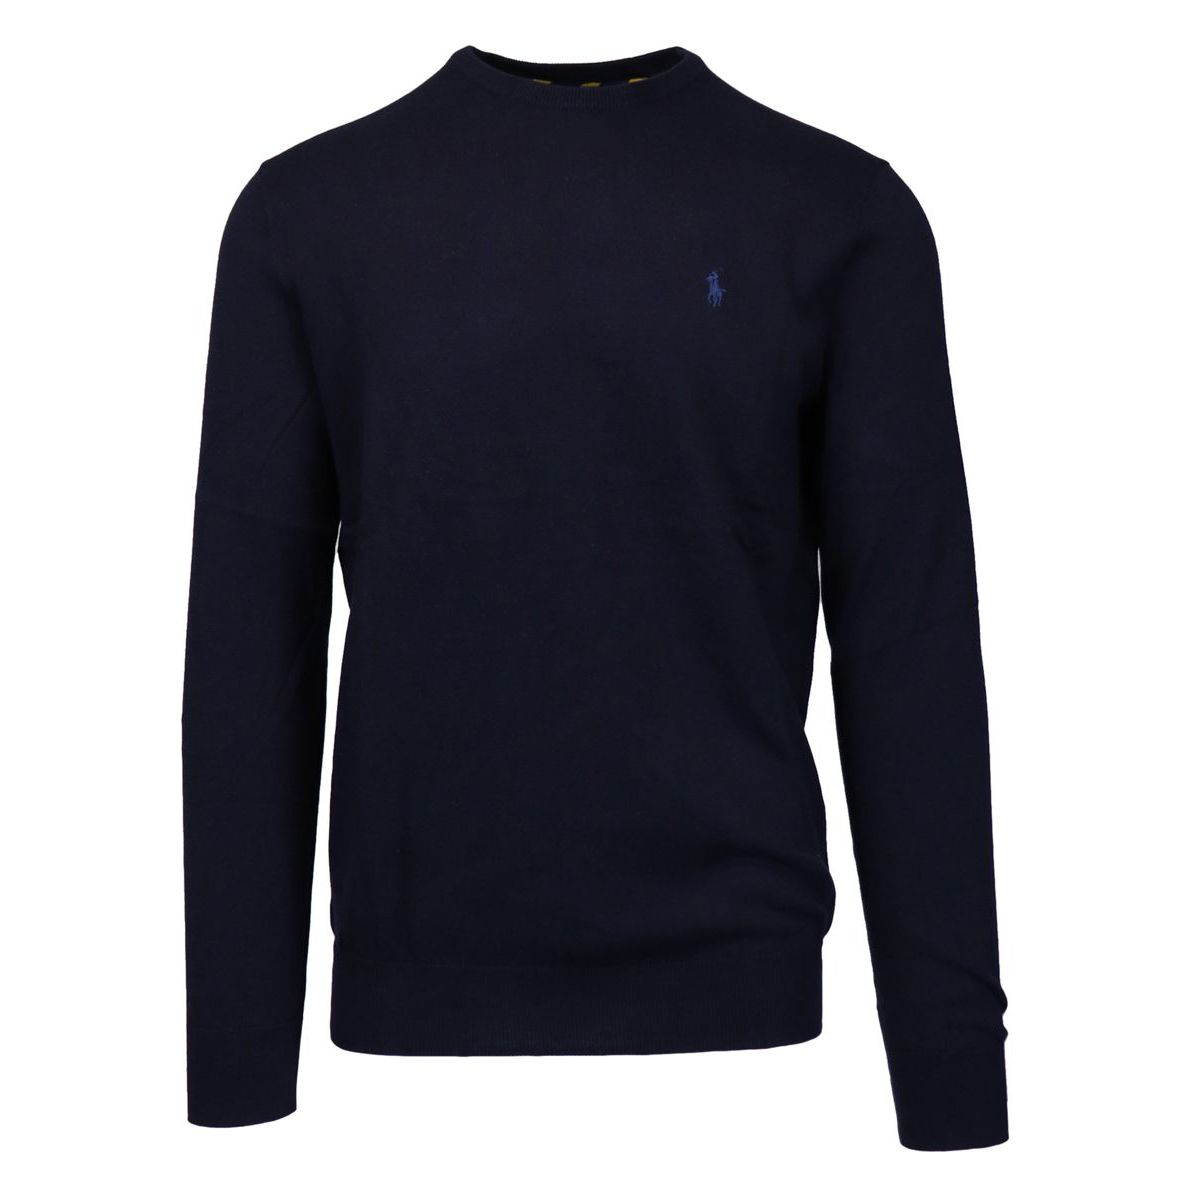 Crewneck cotton pullover with logo embroidery Navy Polo Ralph Lauren